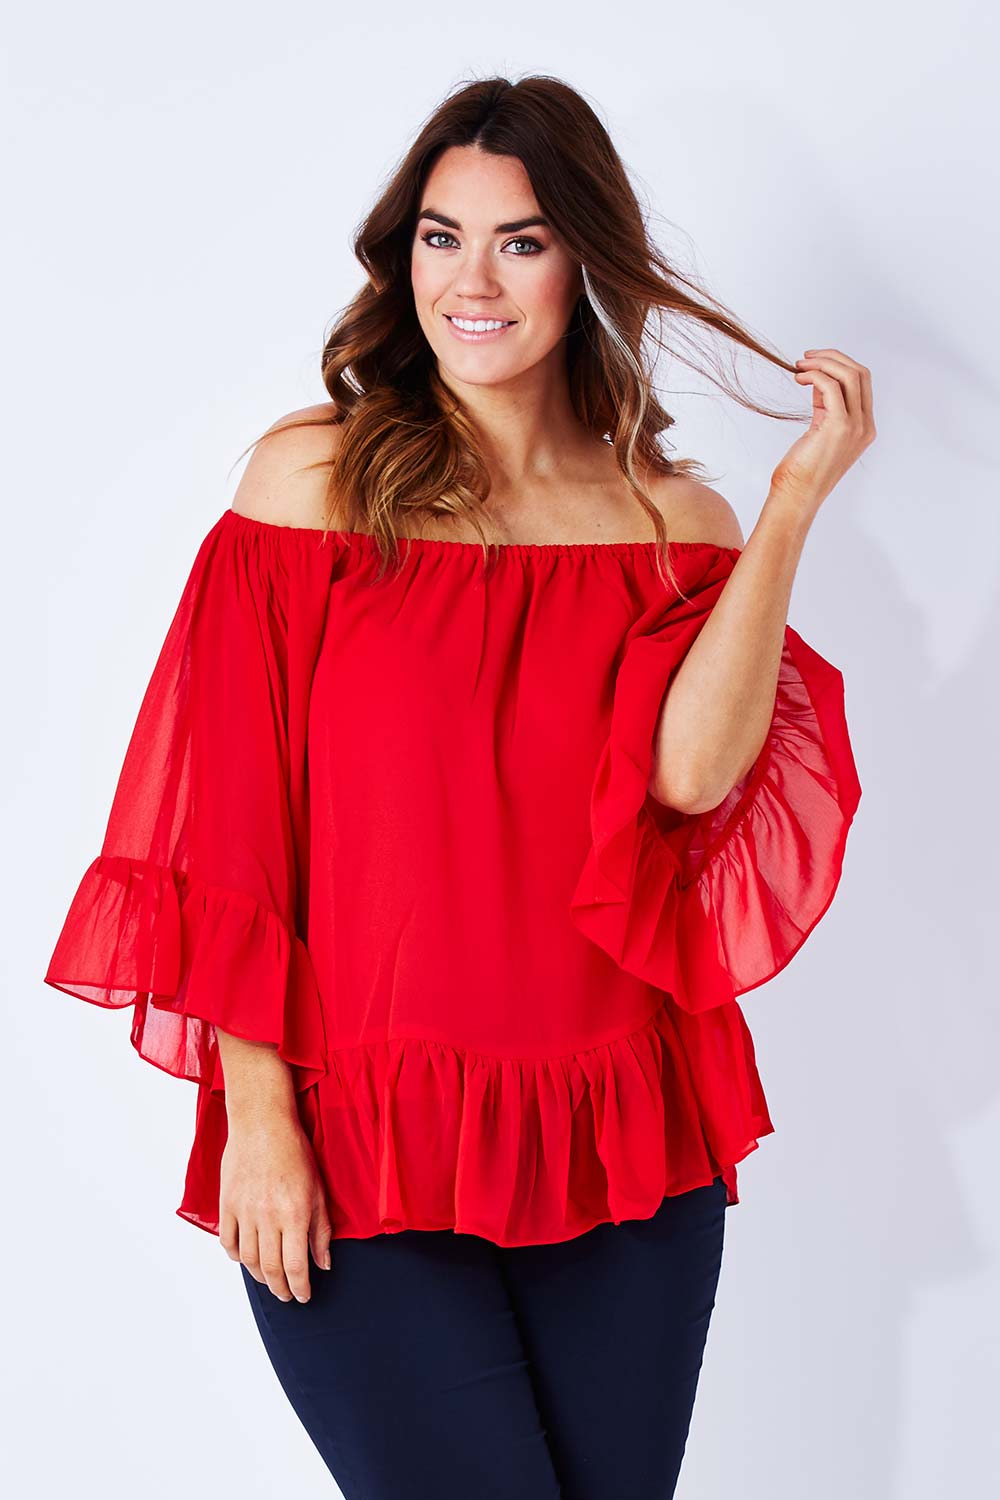 Buy the latest womens ruffled blouses cheap shop fashion style with free shipping, and check out our daily updated new arrival womens ruffled blouses at dvlnpxiuf.ga